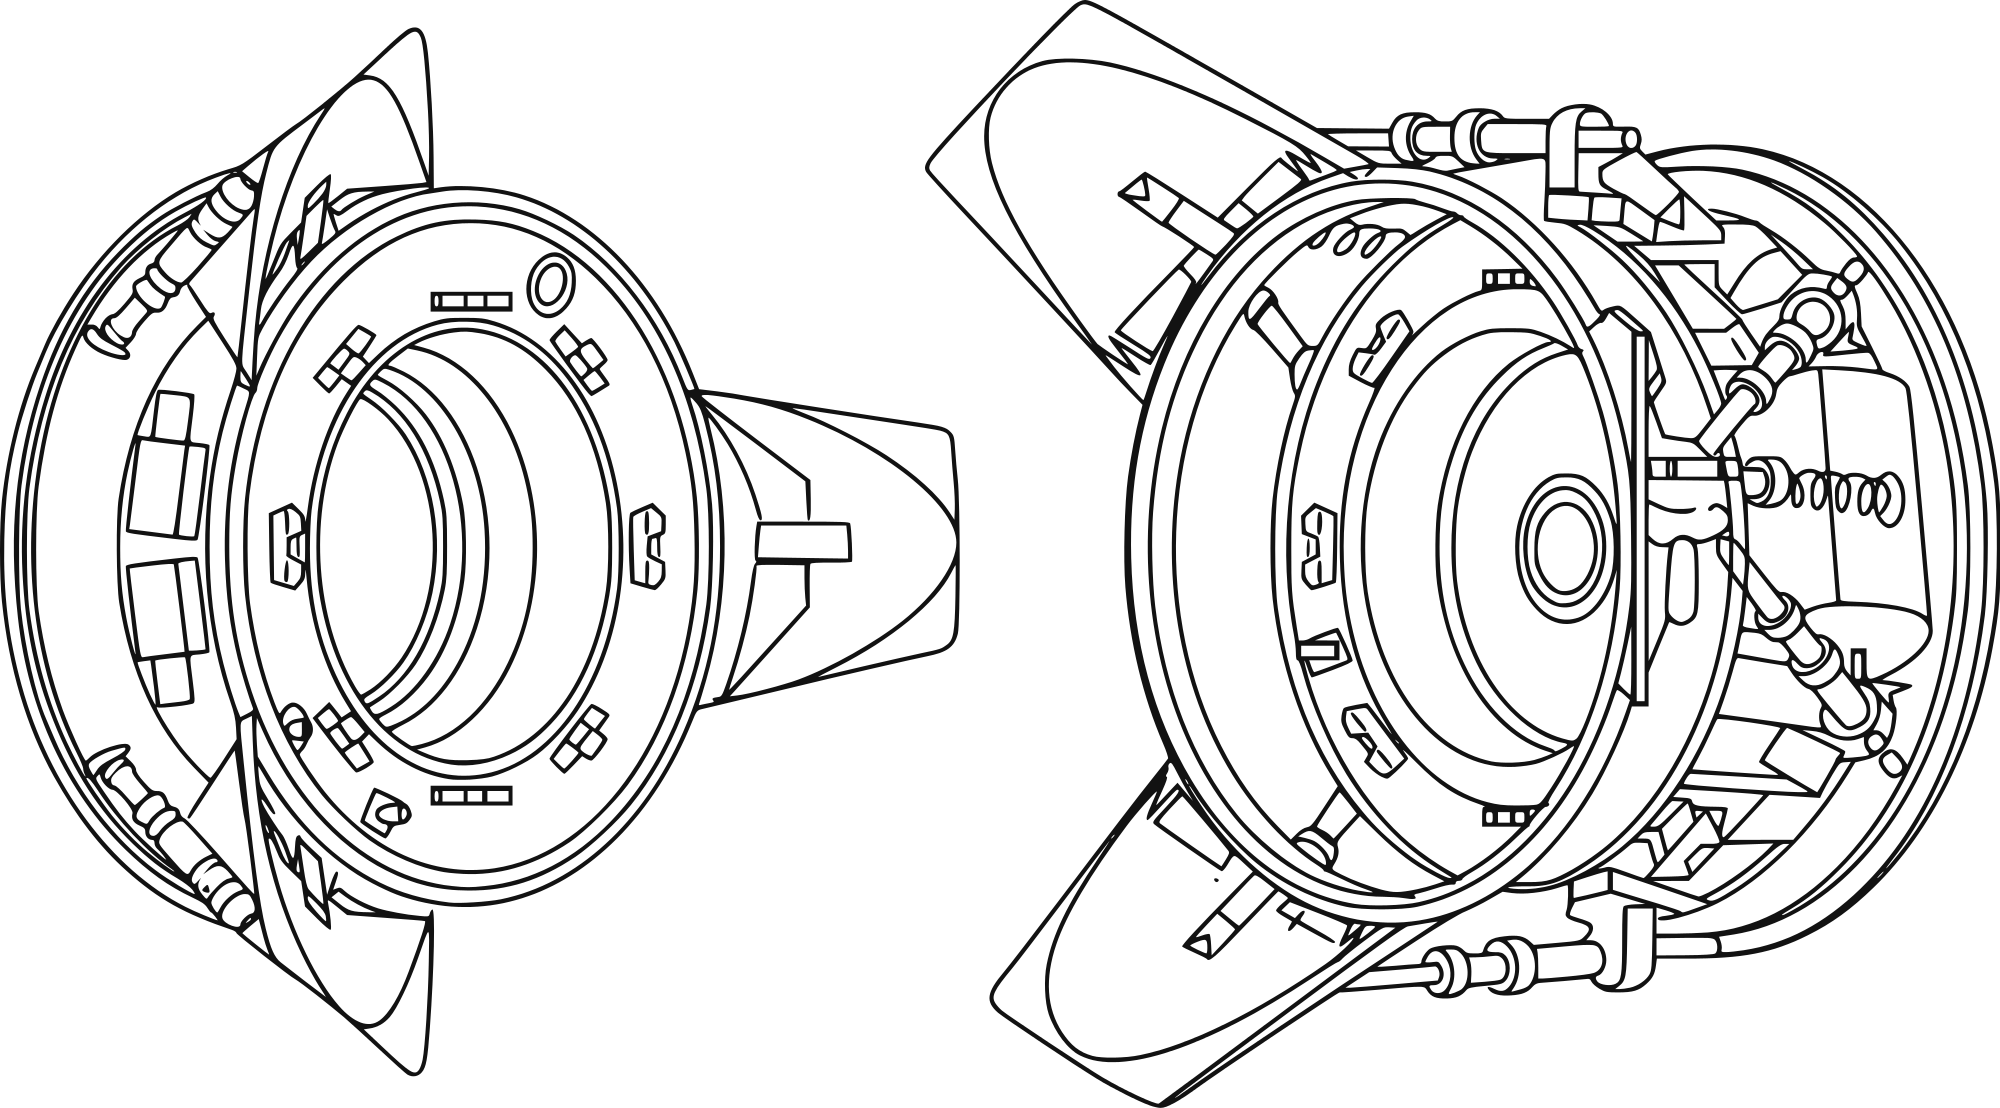 2000x1108 Fileapas 75 Docking System Drawing.svg